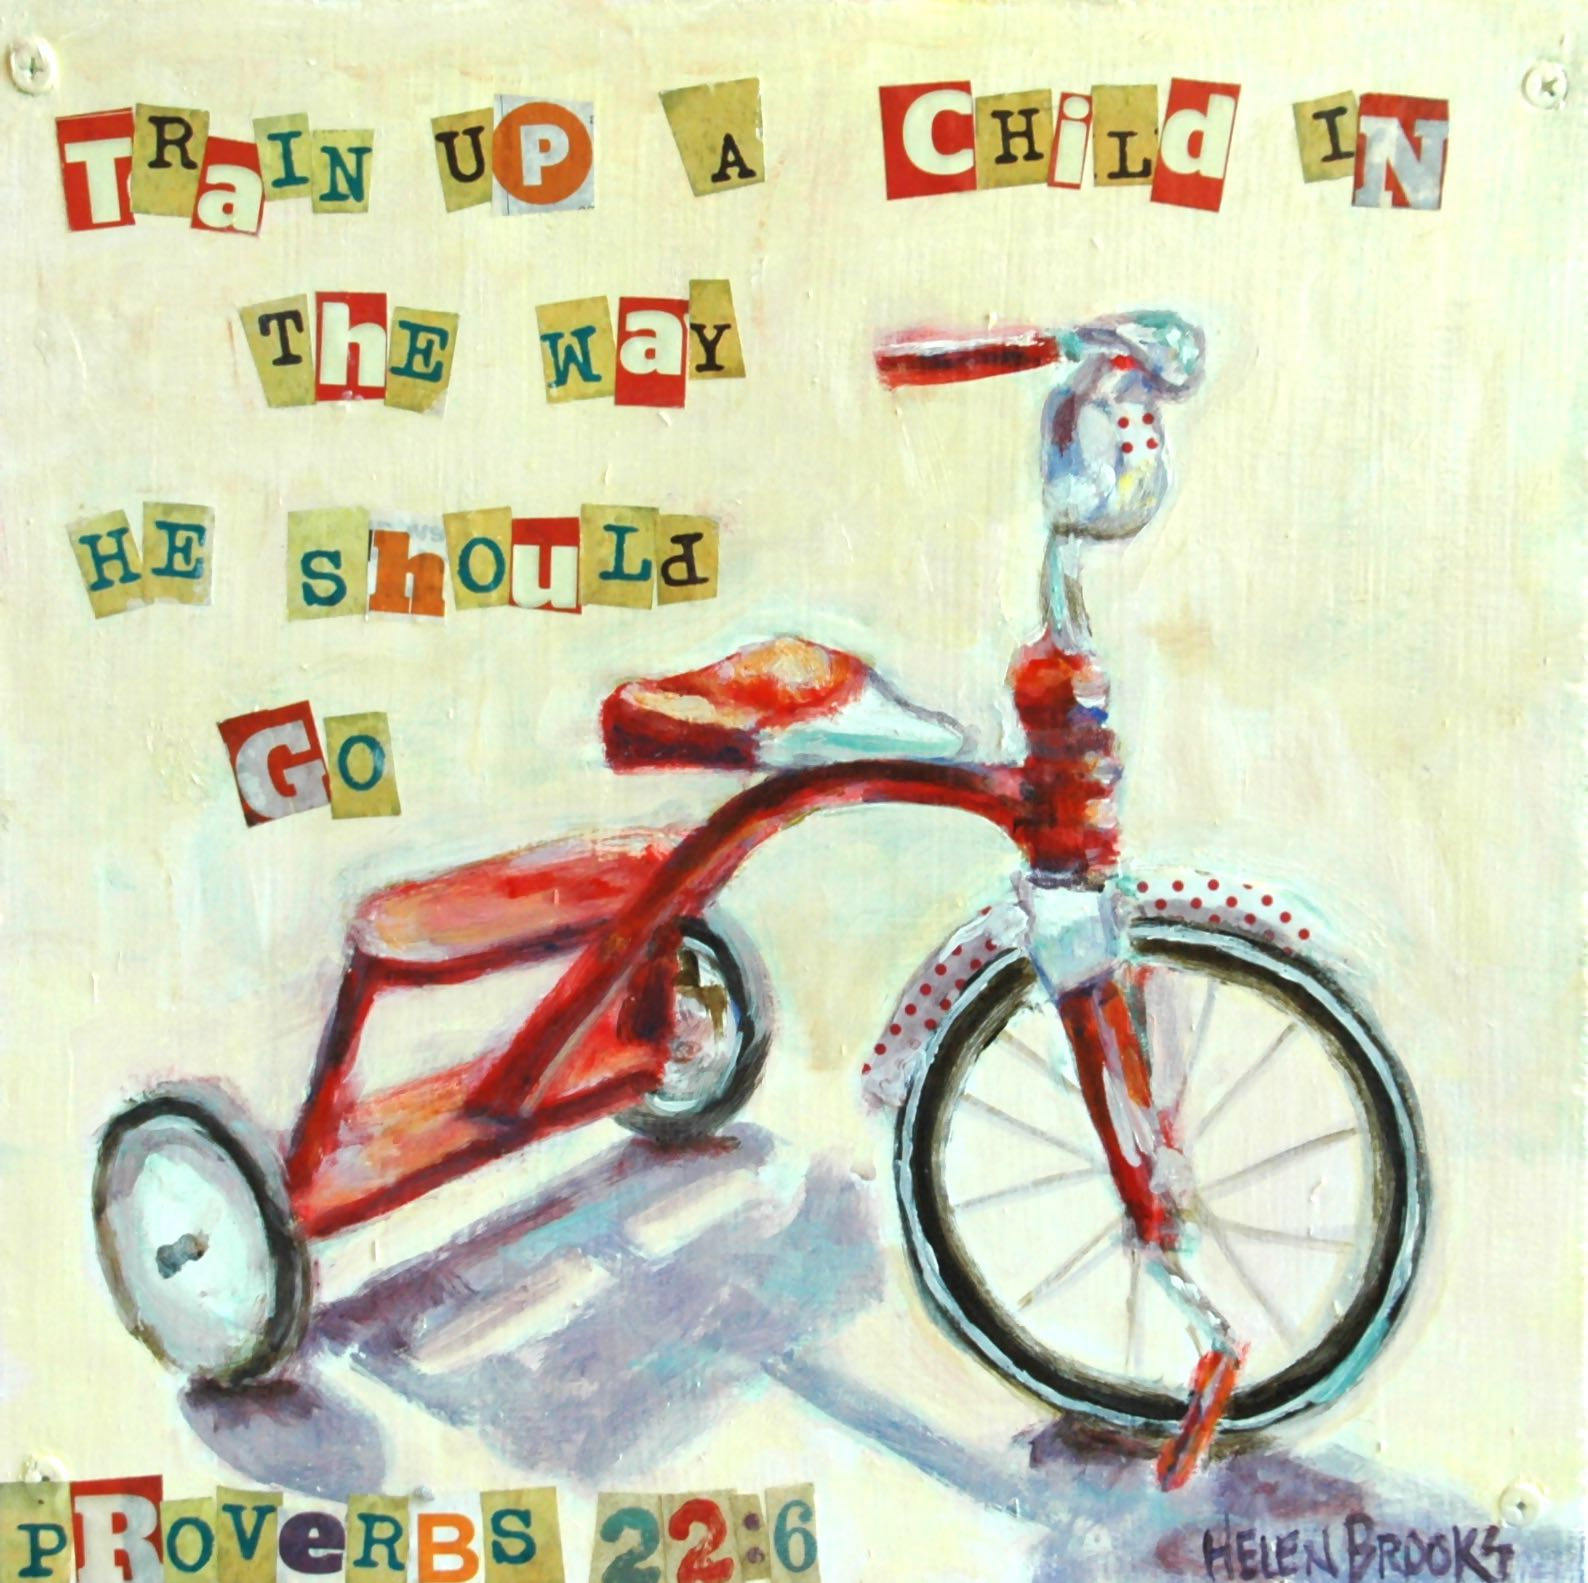 tricycle-training-train+up+a+child-christian+art-scripture